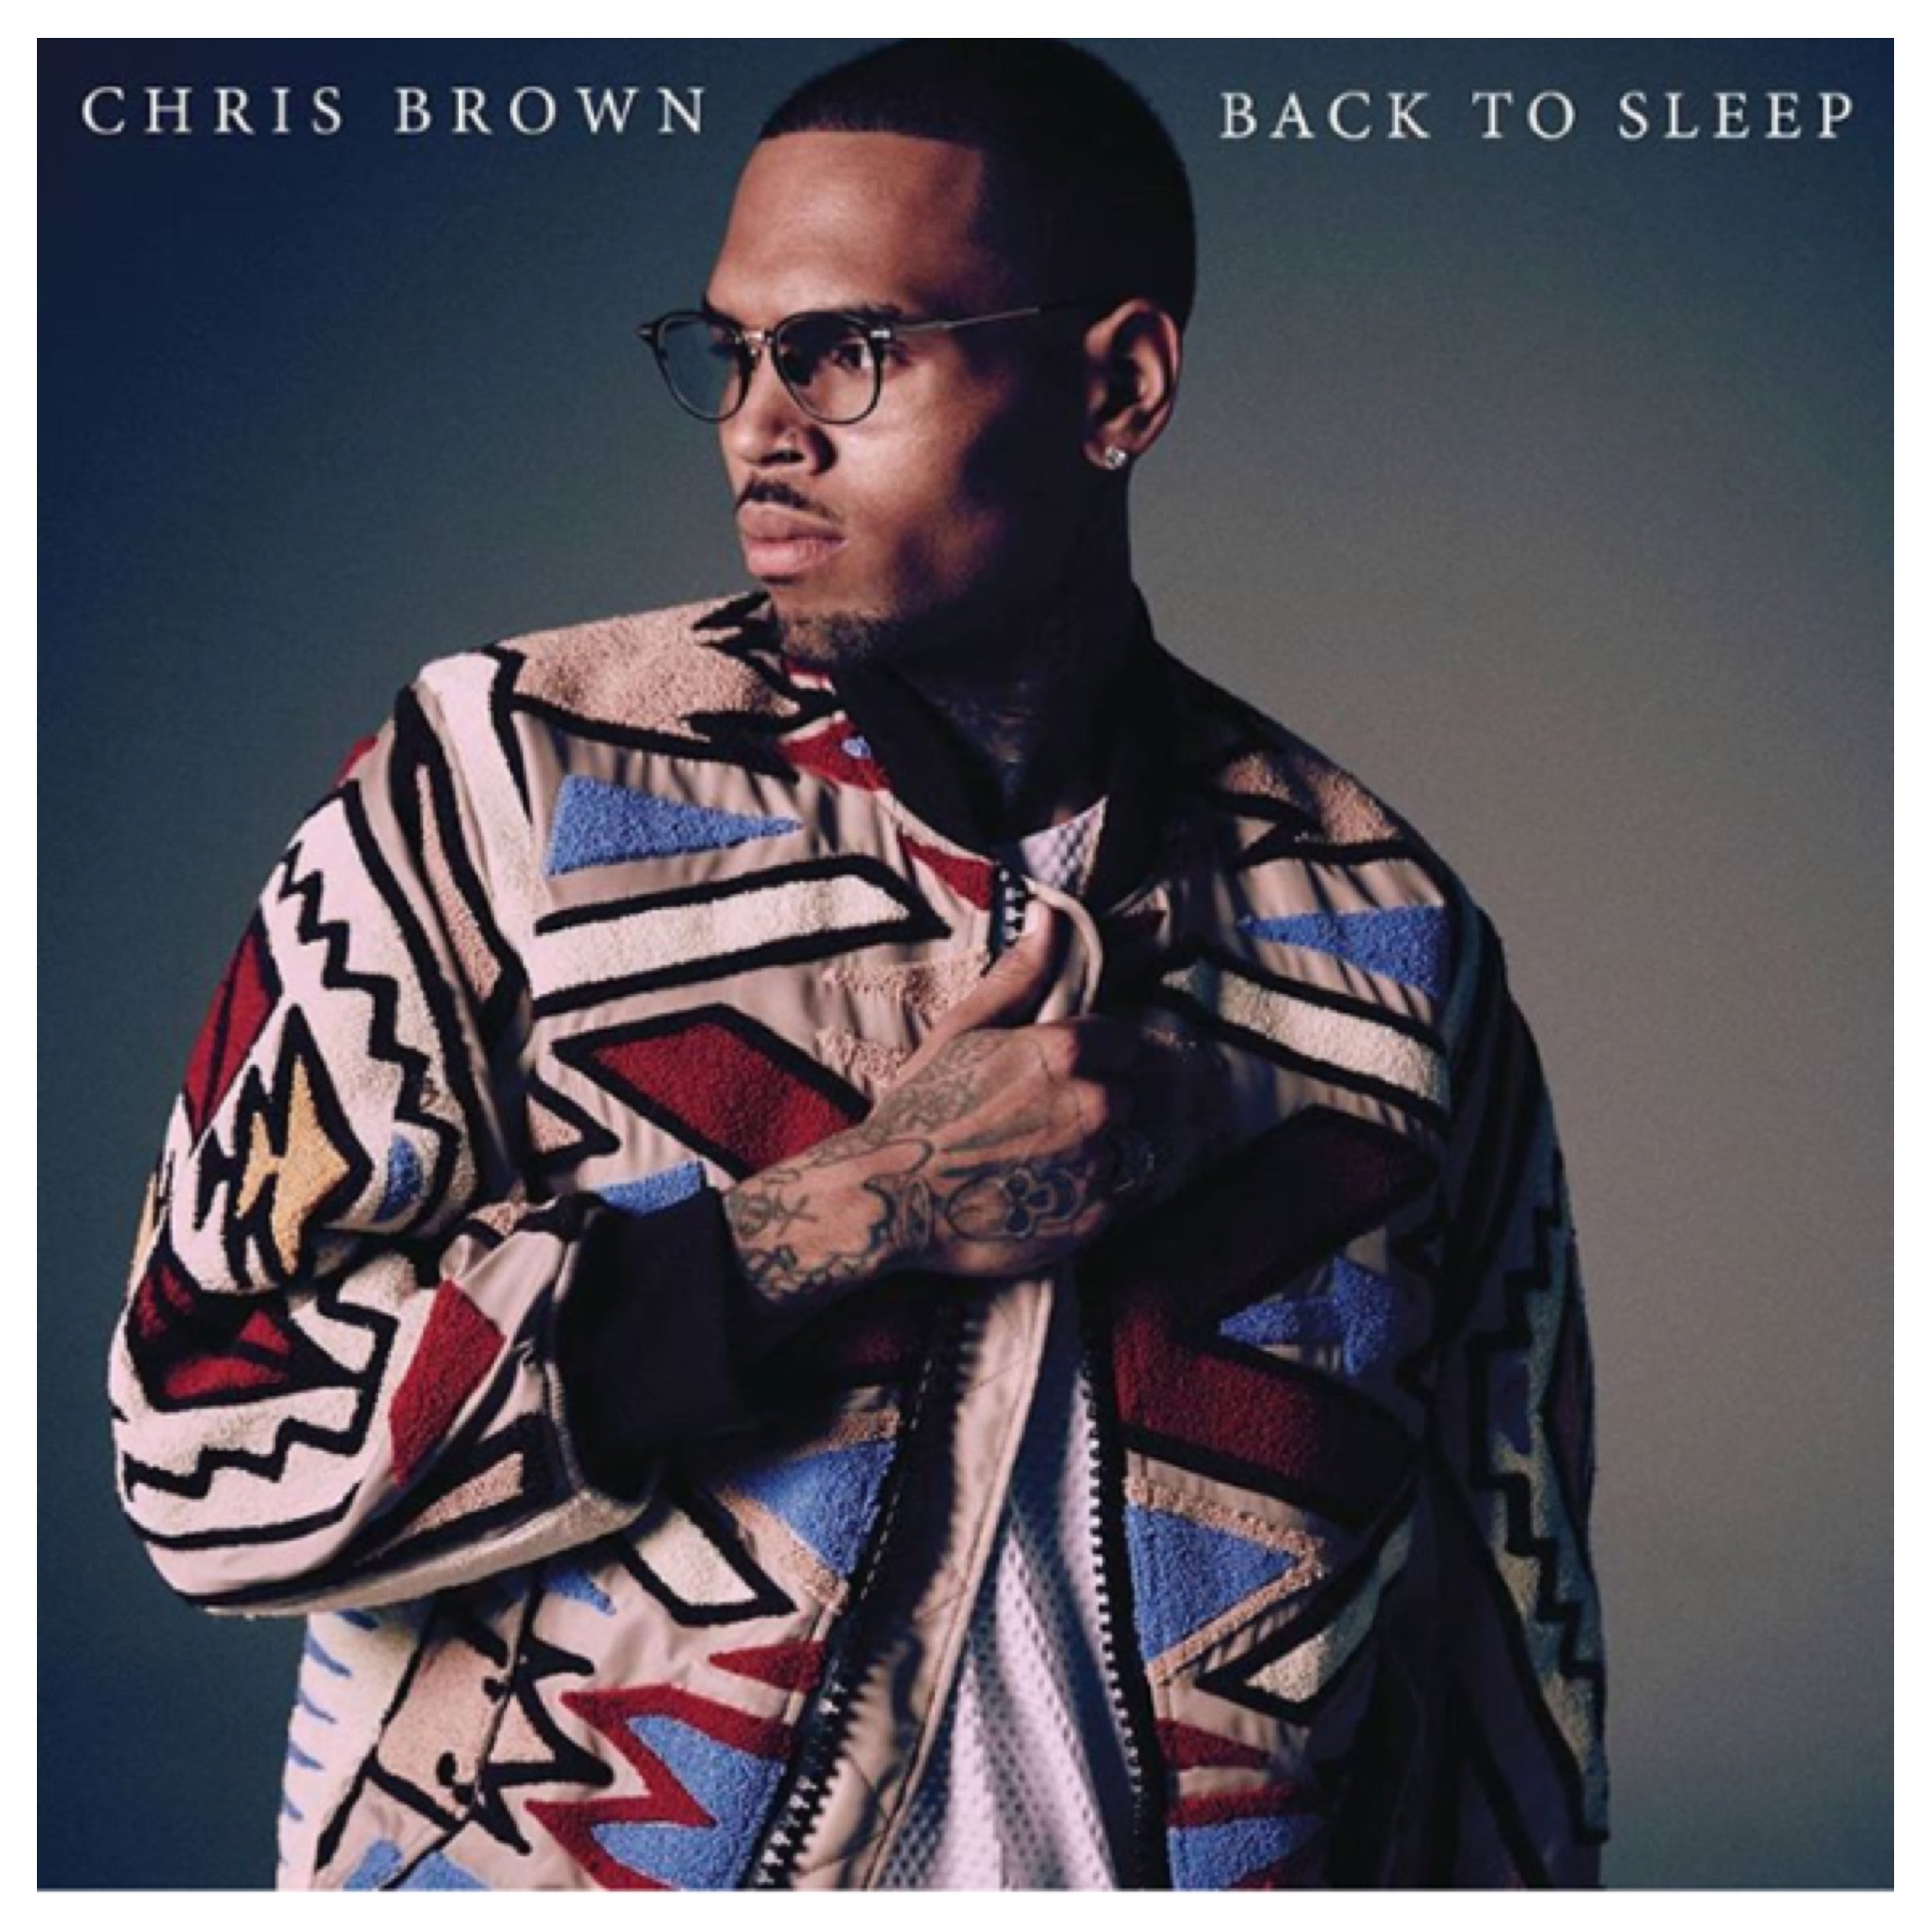 chris brown sex me back to sleep in Saguenay